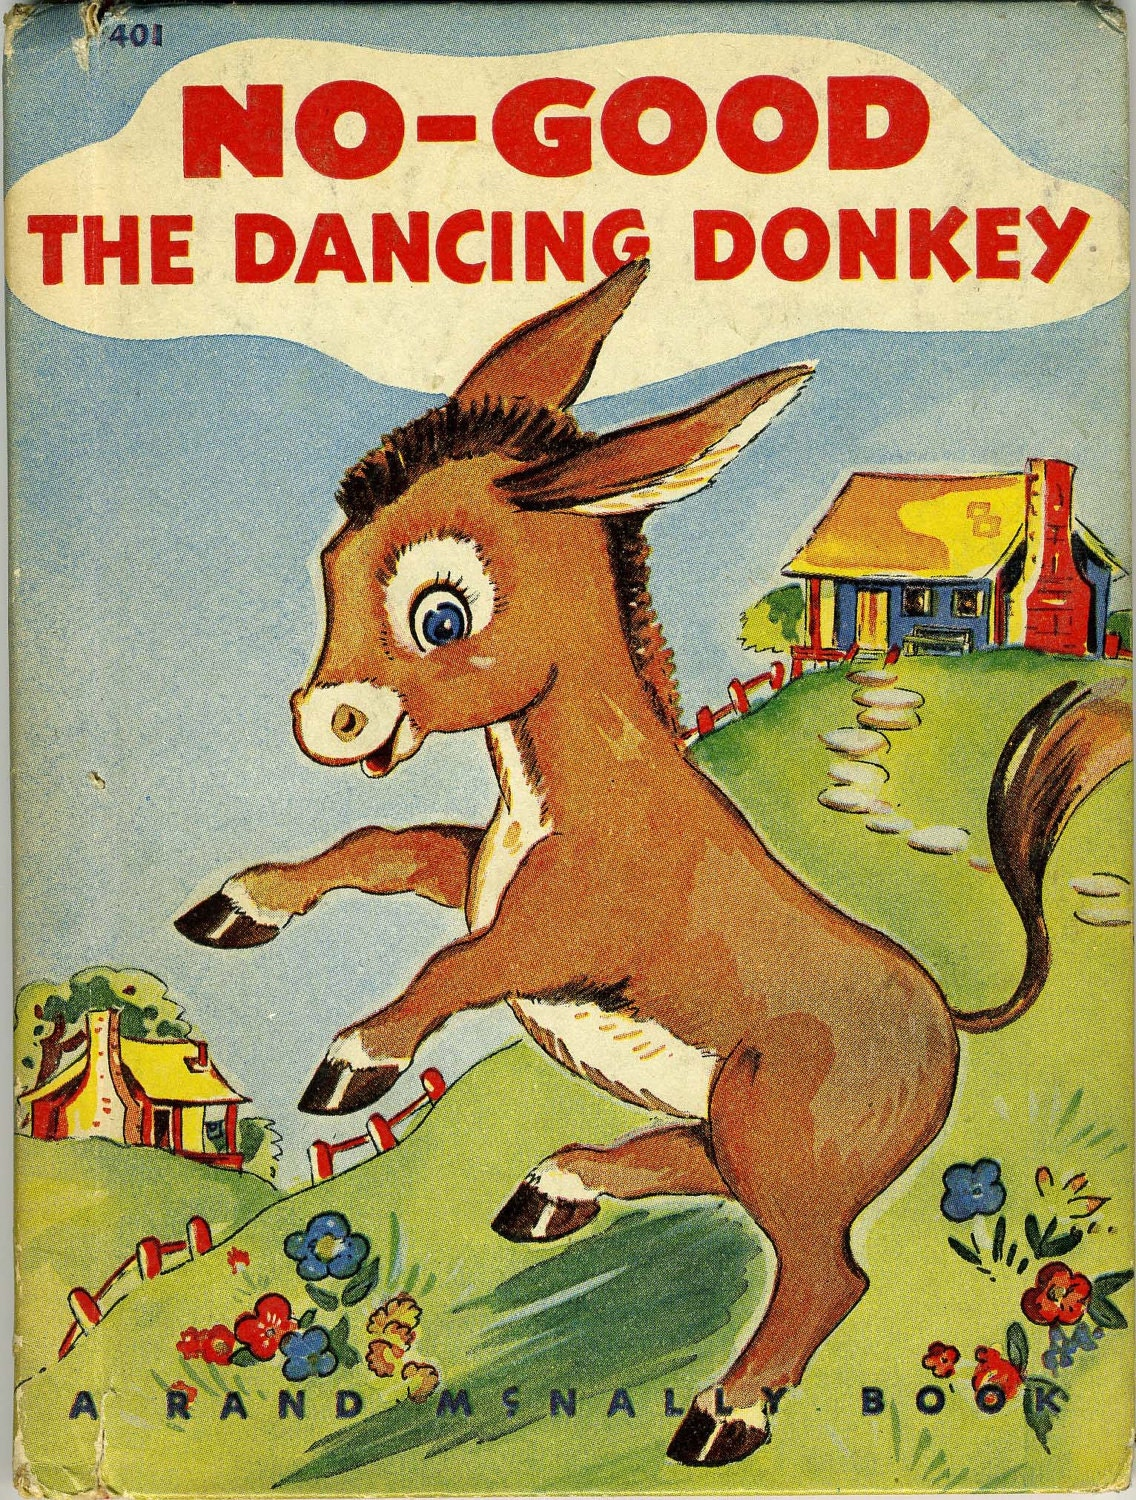 No-Good The Dancing Donkey